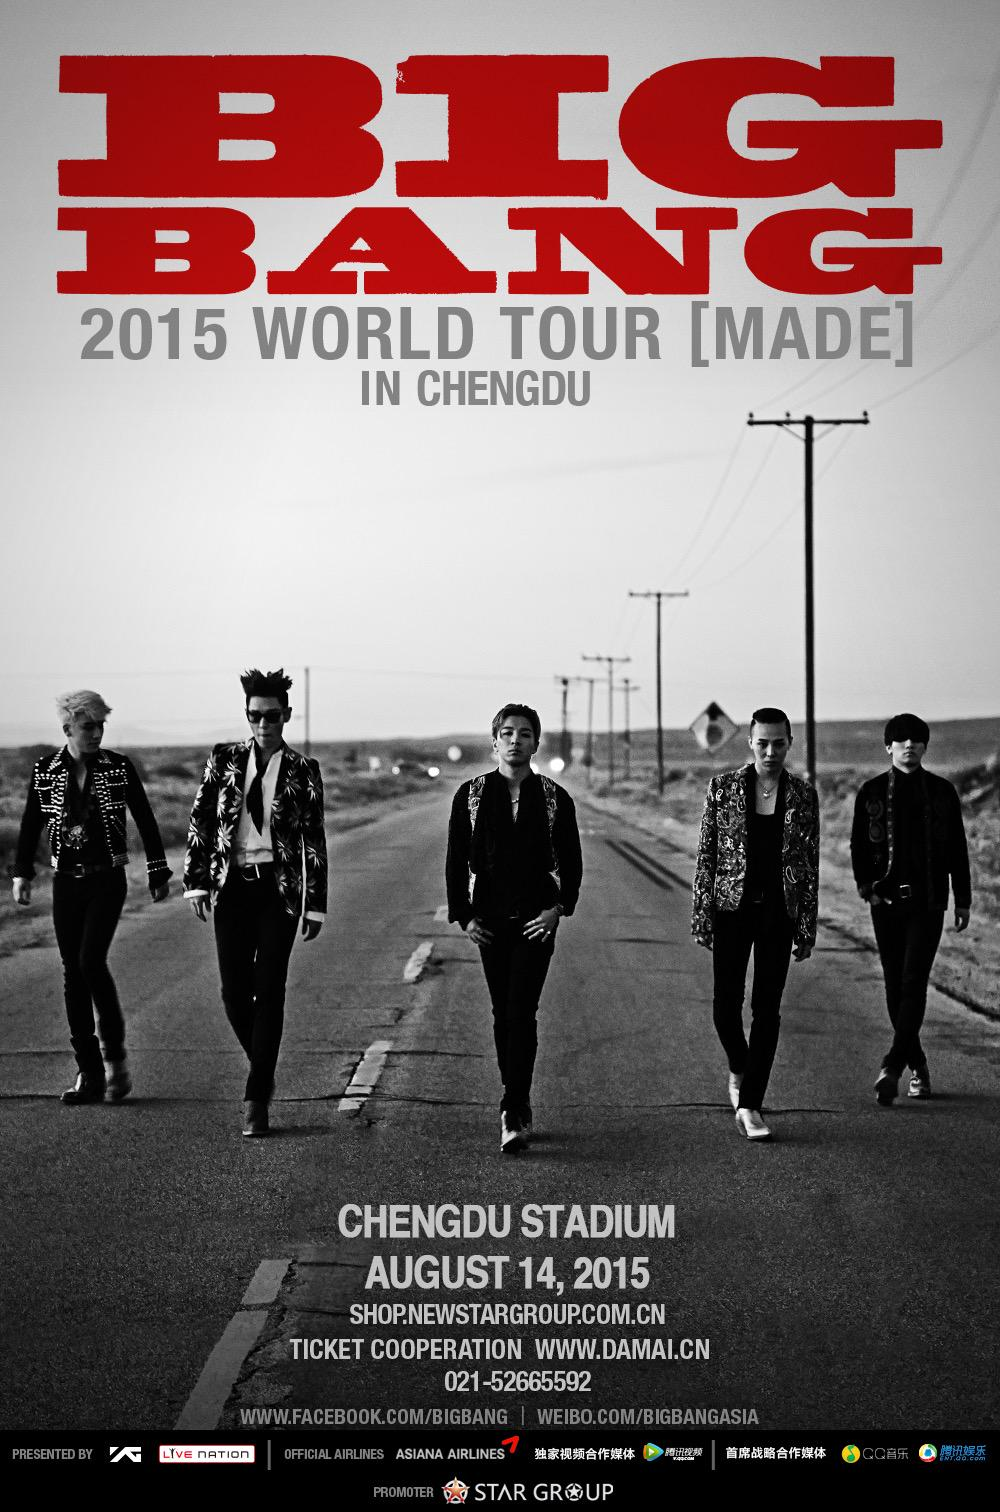 BIGBANG World Tour Chengdu